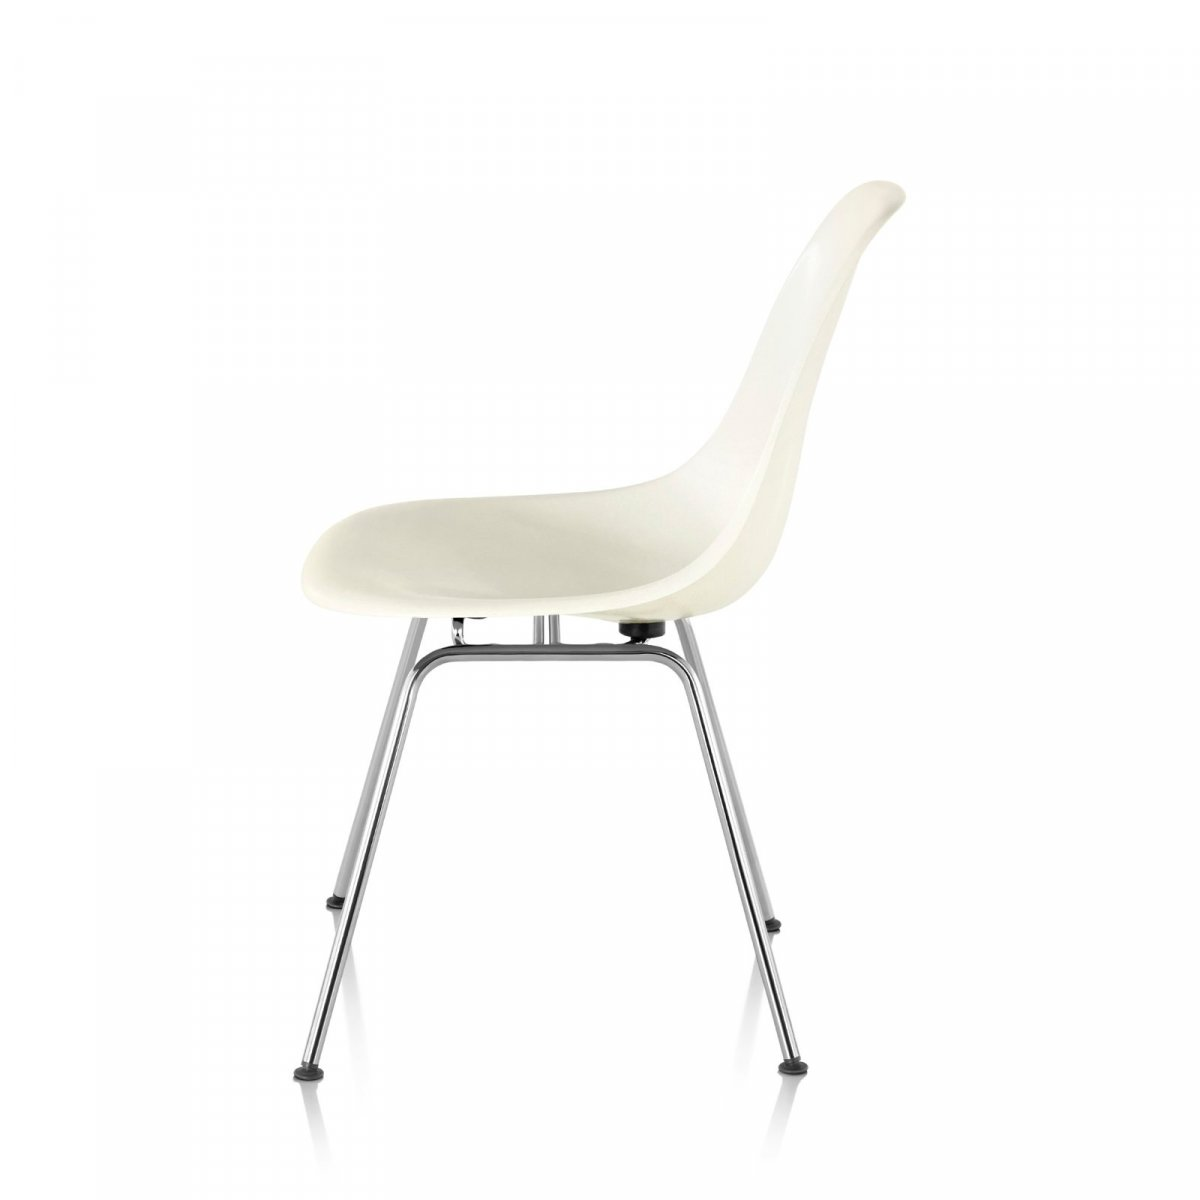 Eames Molded Plastic Side Chair 4-Leg Base, white, side view.